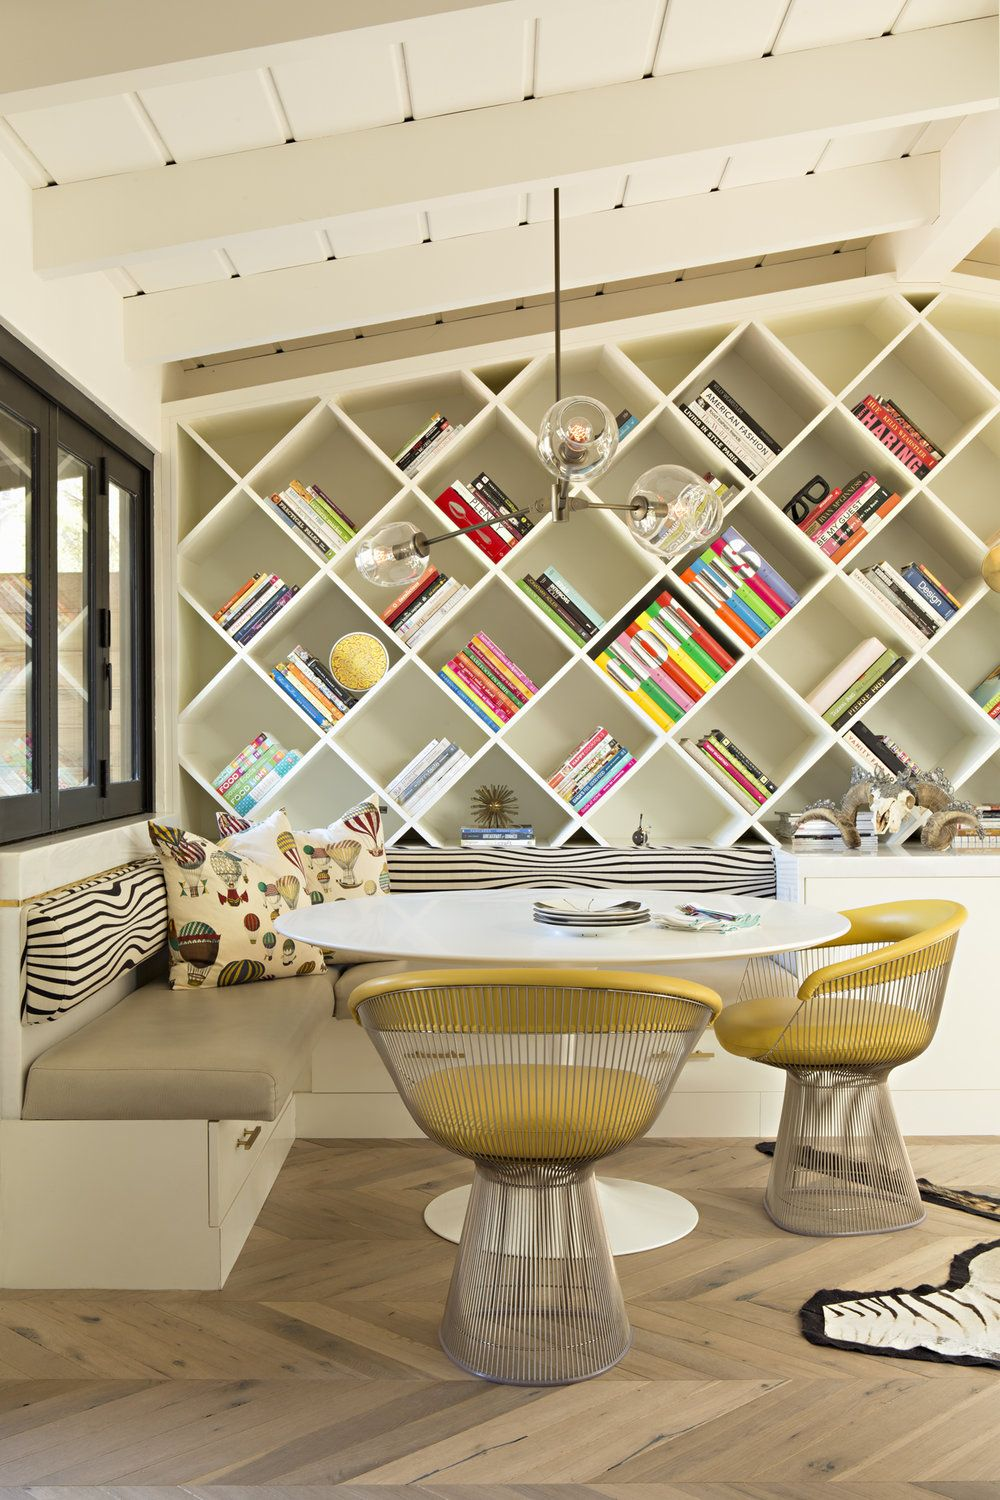 Del Mar Residence Projecttreehouse Residentialdesign Interiordesign Custom Color Bookcase